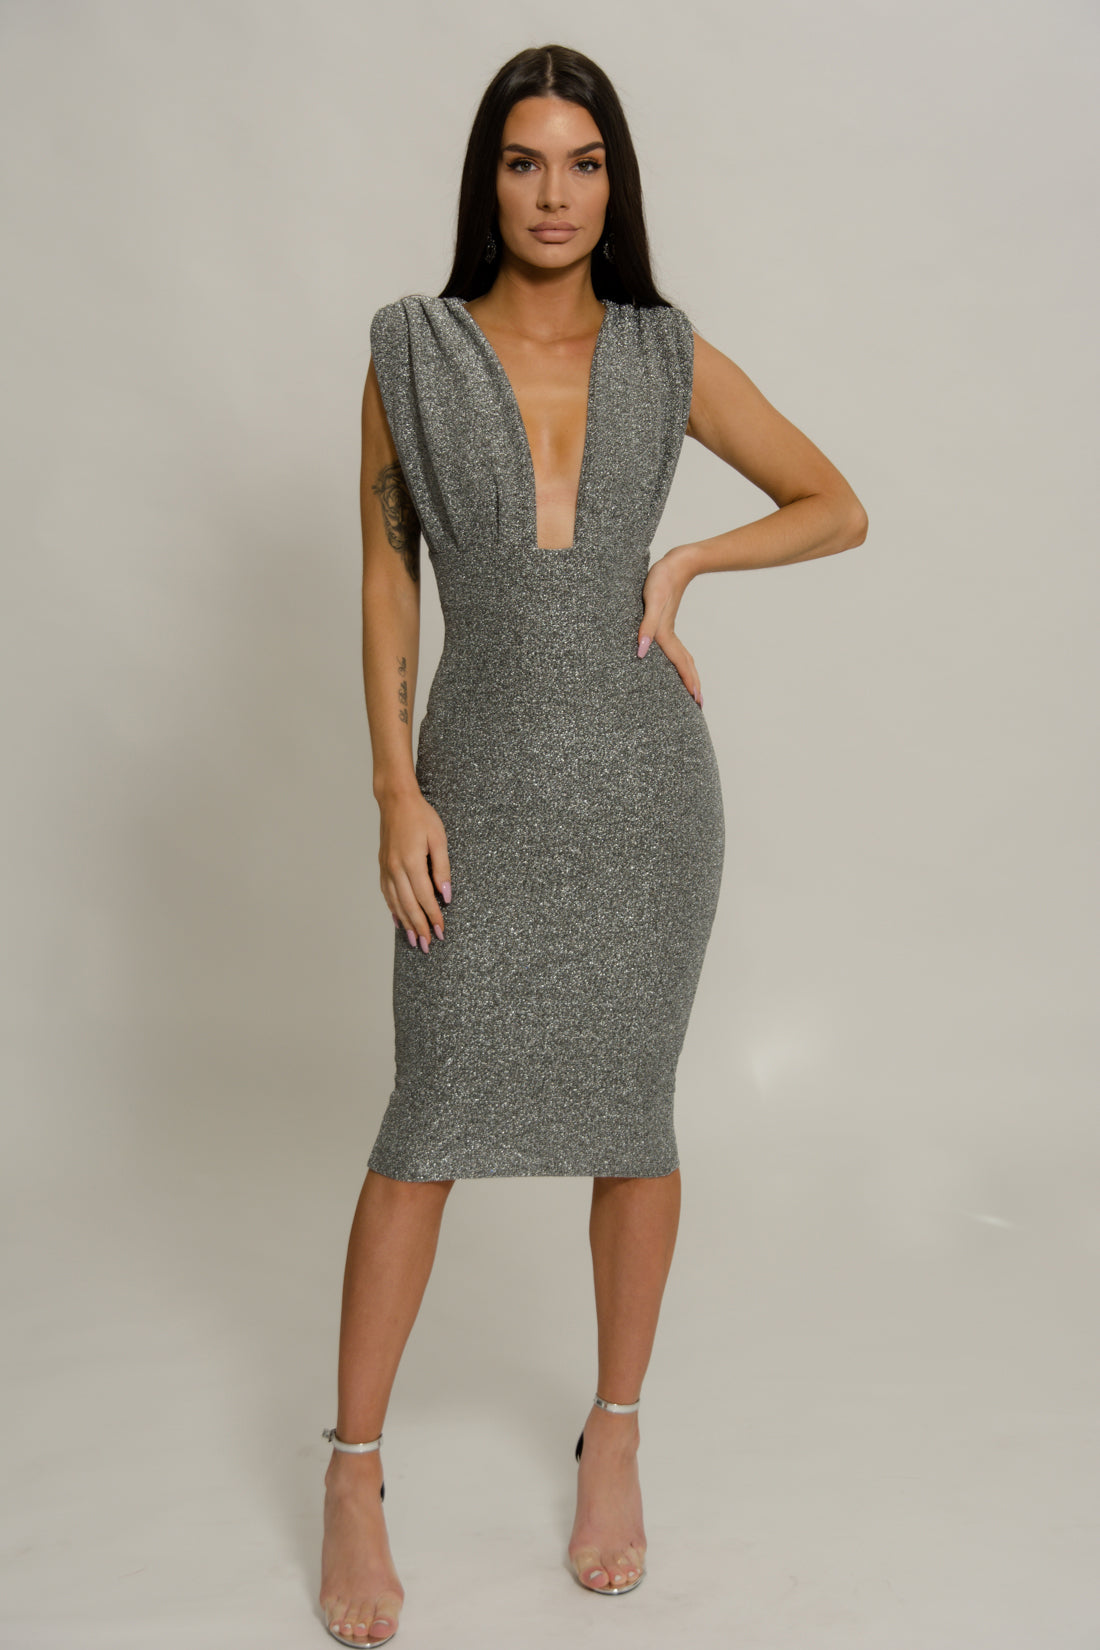 THE LIANNA DRESS